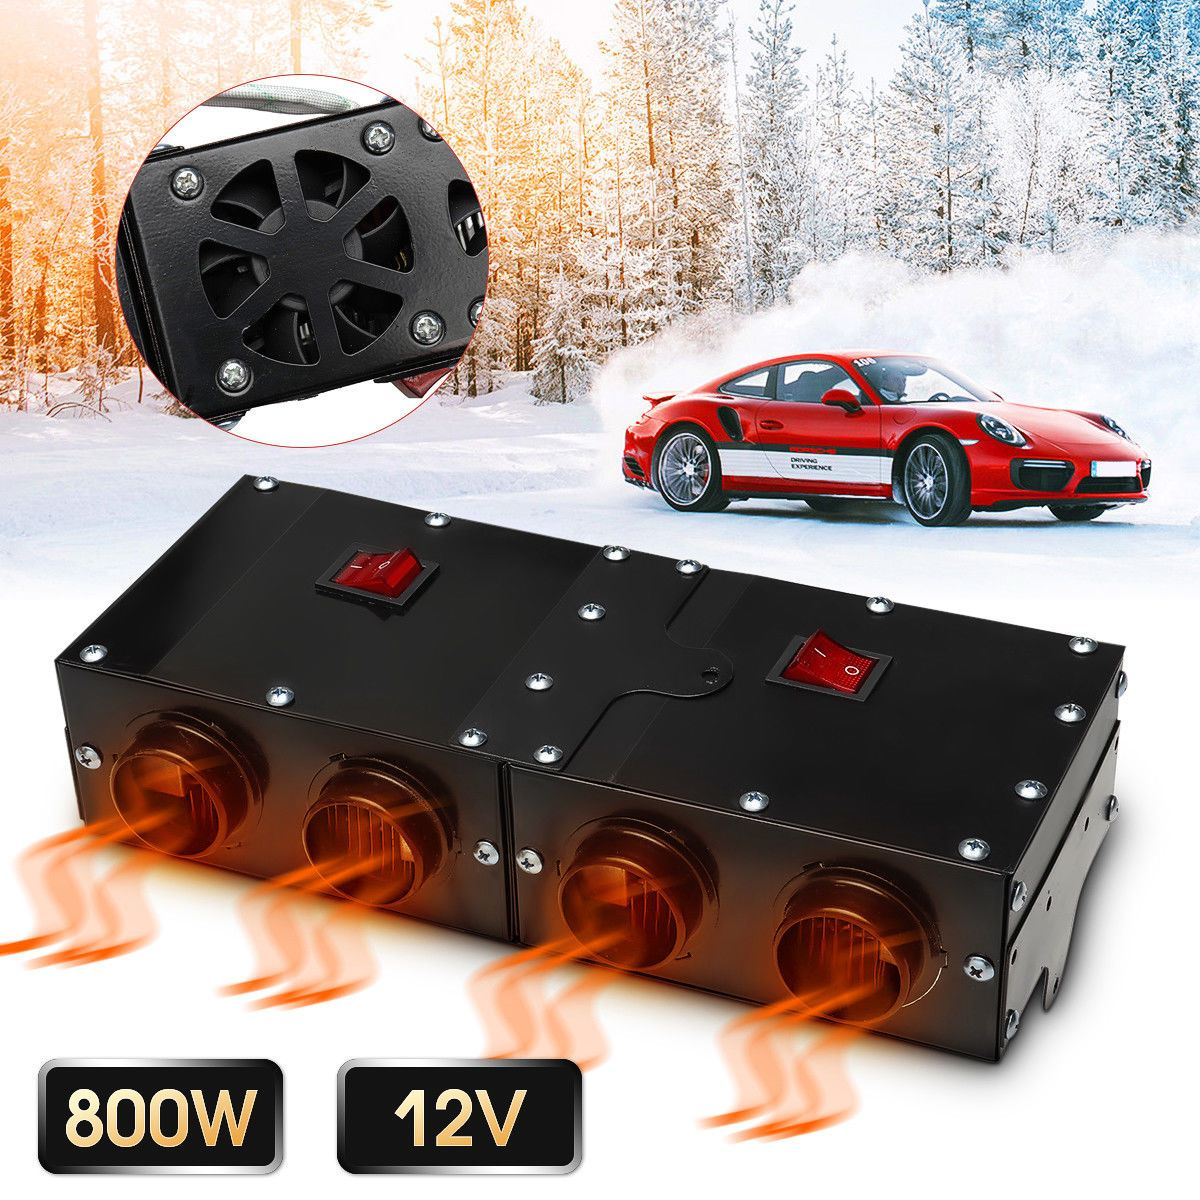 800W/500W Universal Portable Car Heater Auto Van Heating Air Heater Compact Defroster Demister 12V Car Electrical Appliances800W/500W Universal Portable Car Heater Auto Van Heating Air Heater Compact Defroster Demister 12V Car Electrical Appliances